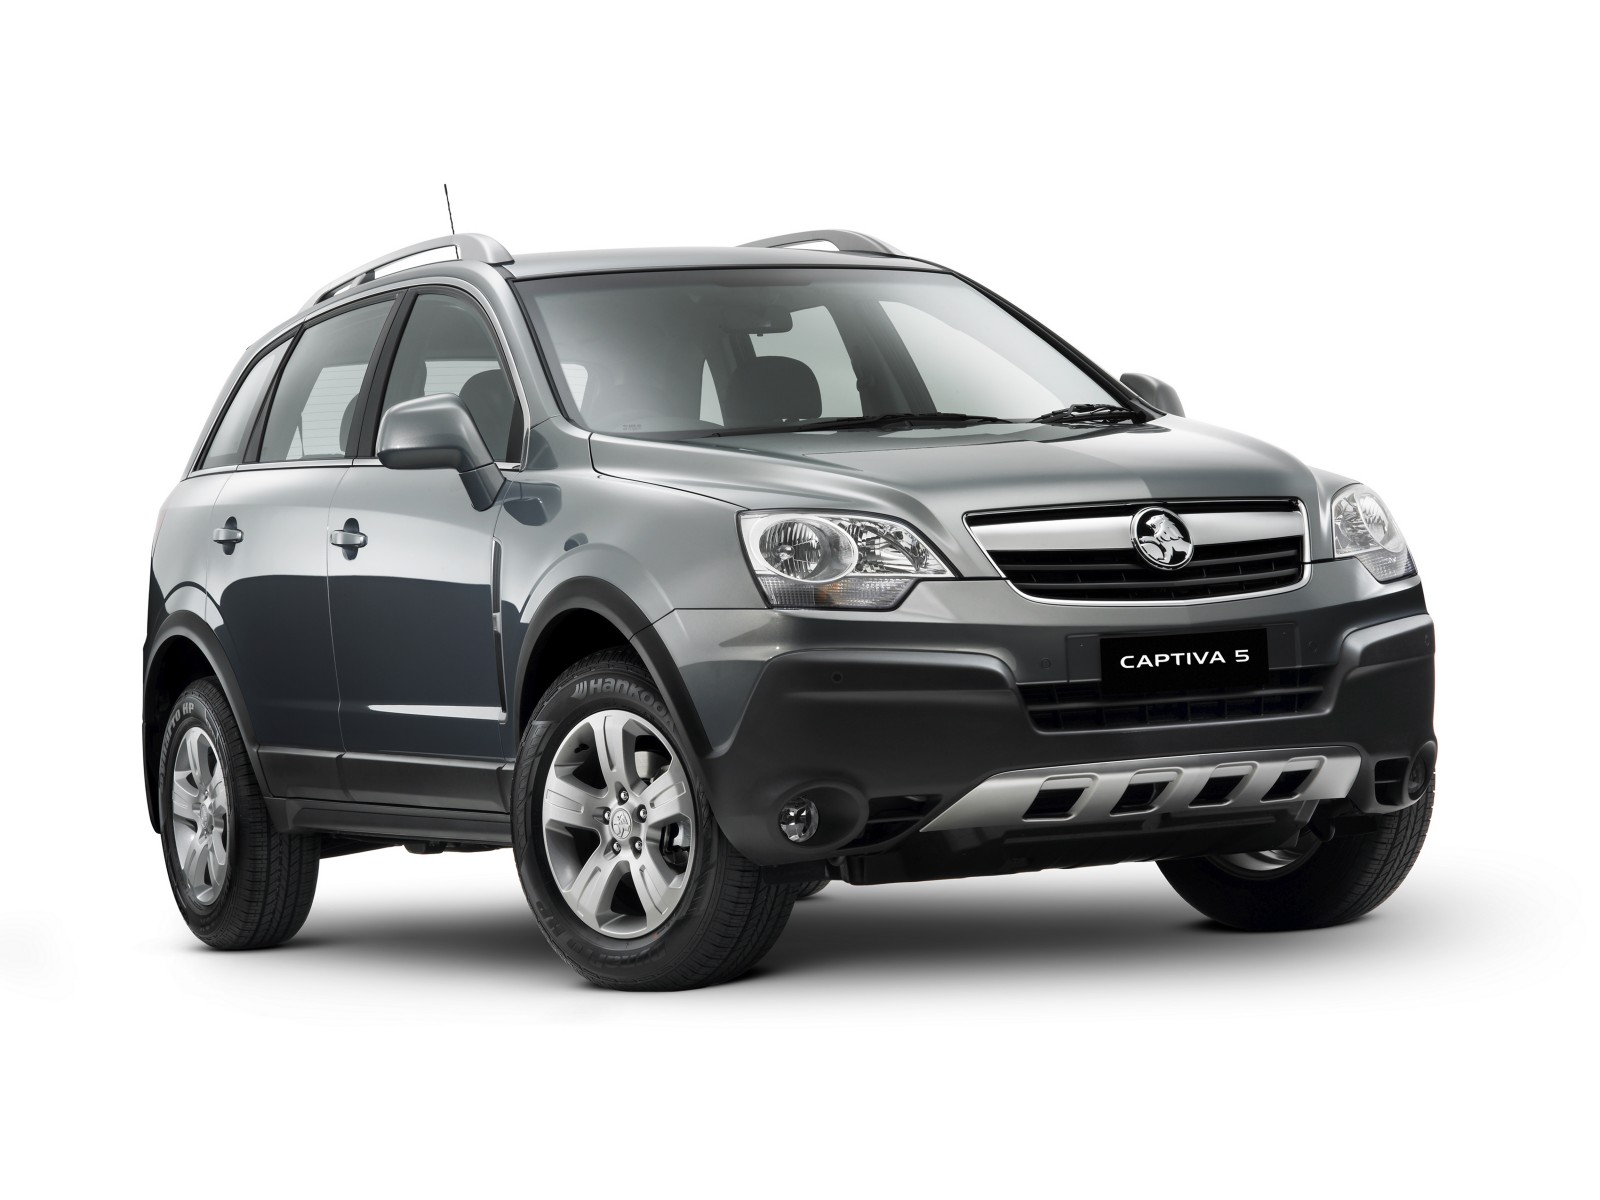 2010 holden captiva 5 awd wallpapers pictures